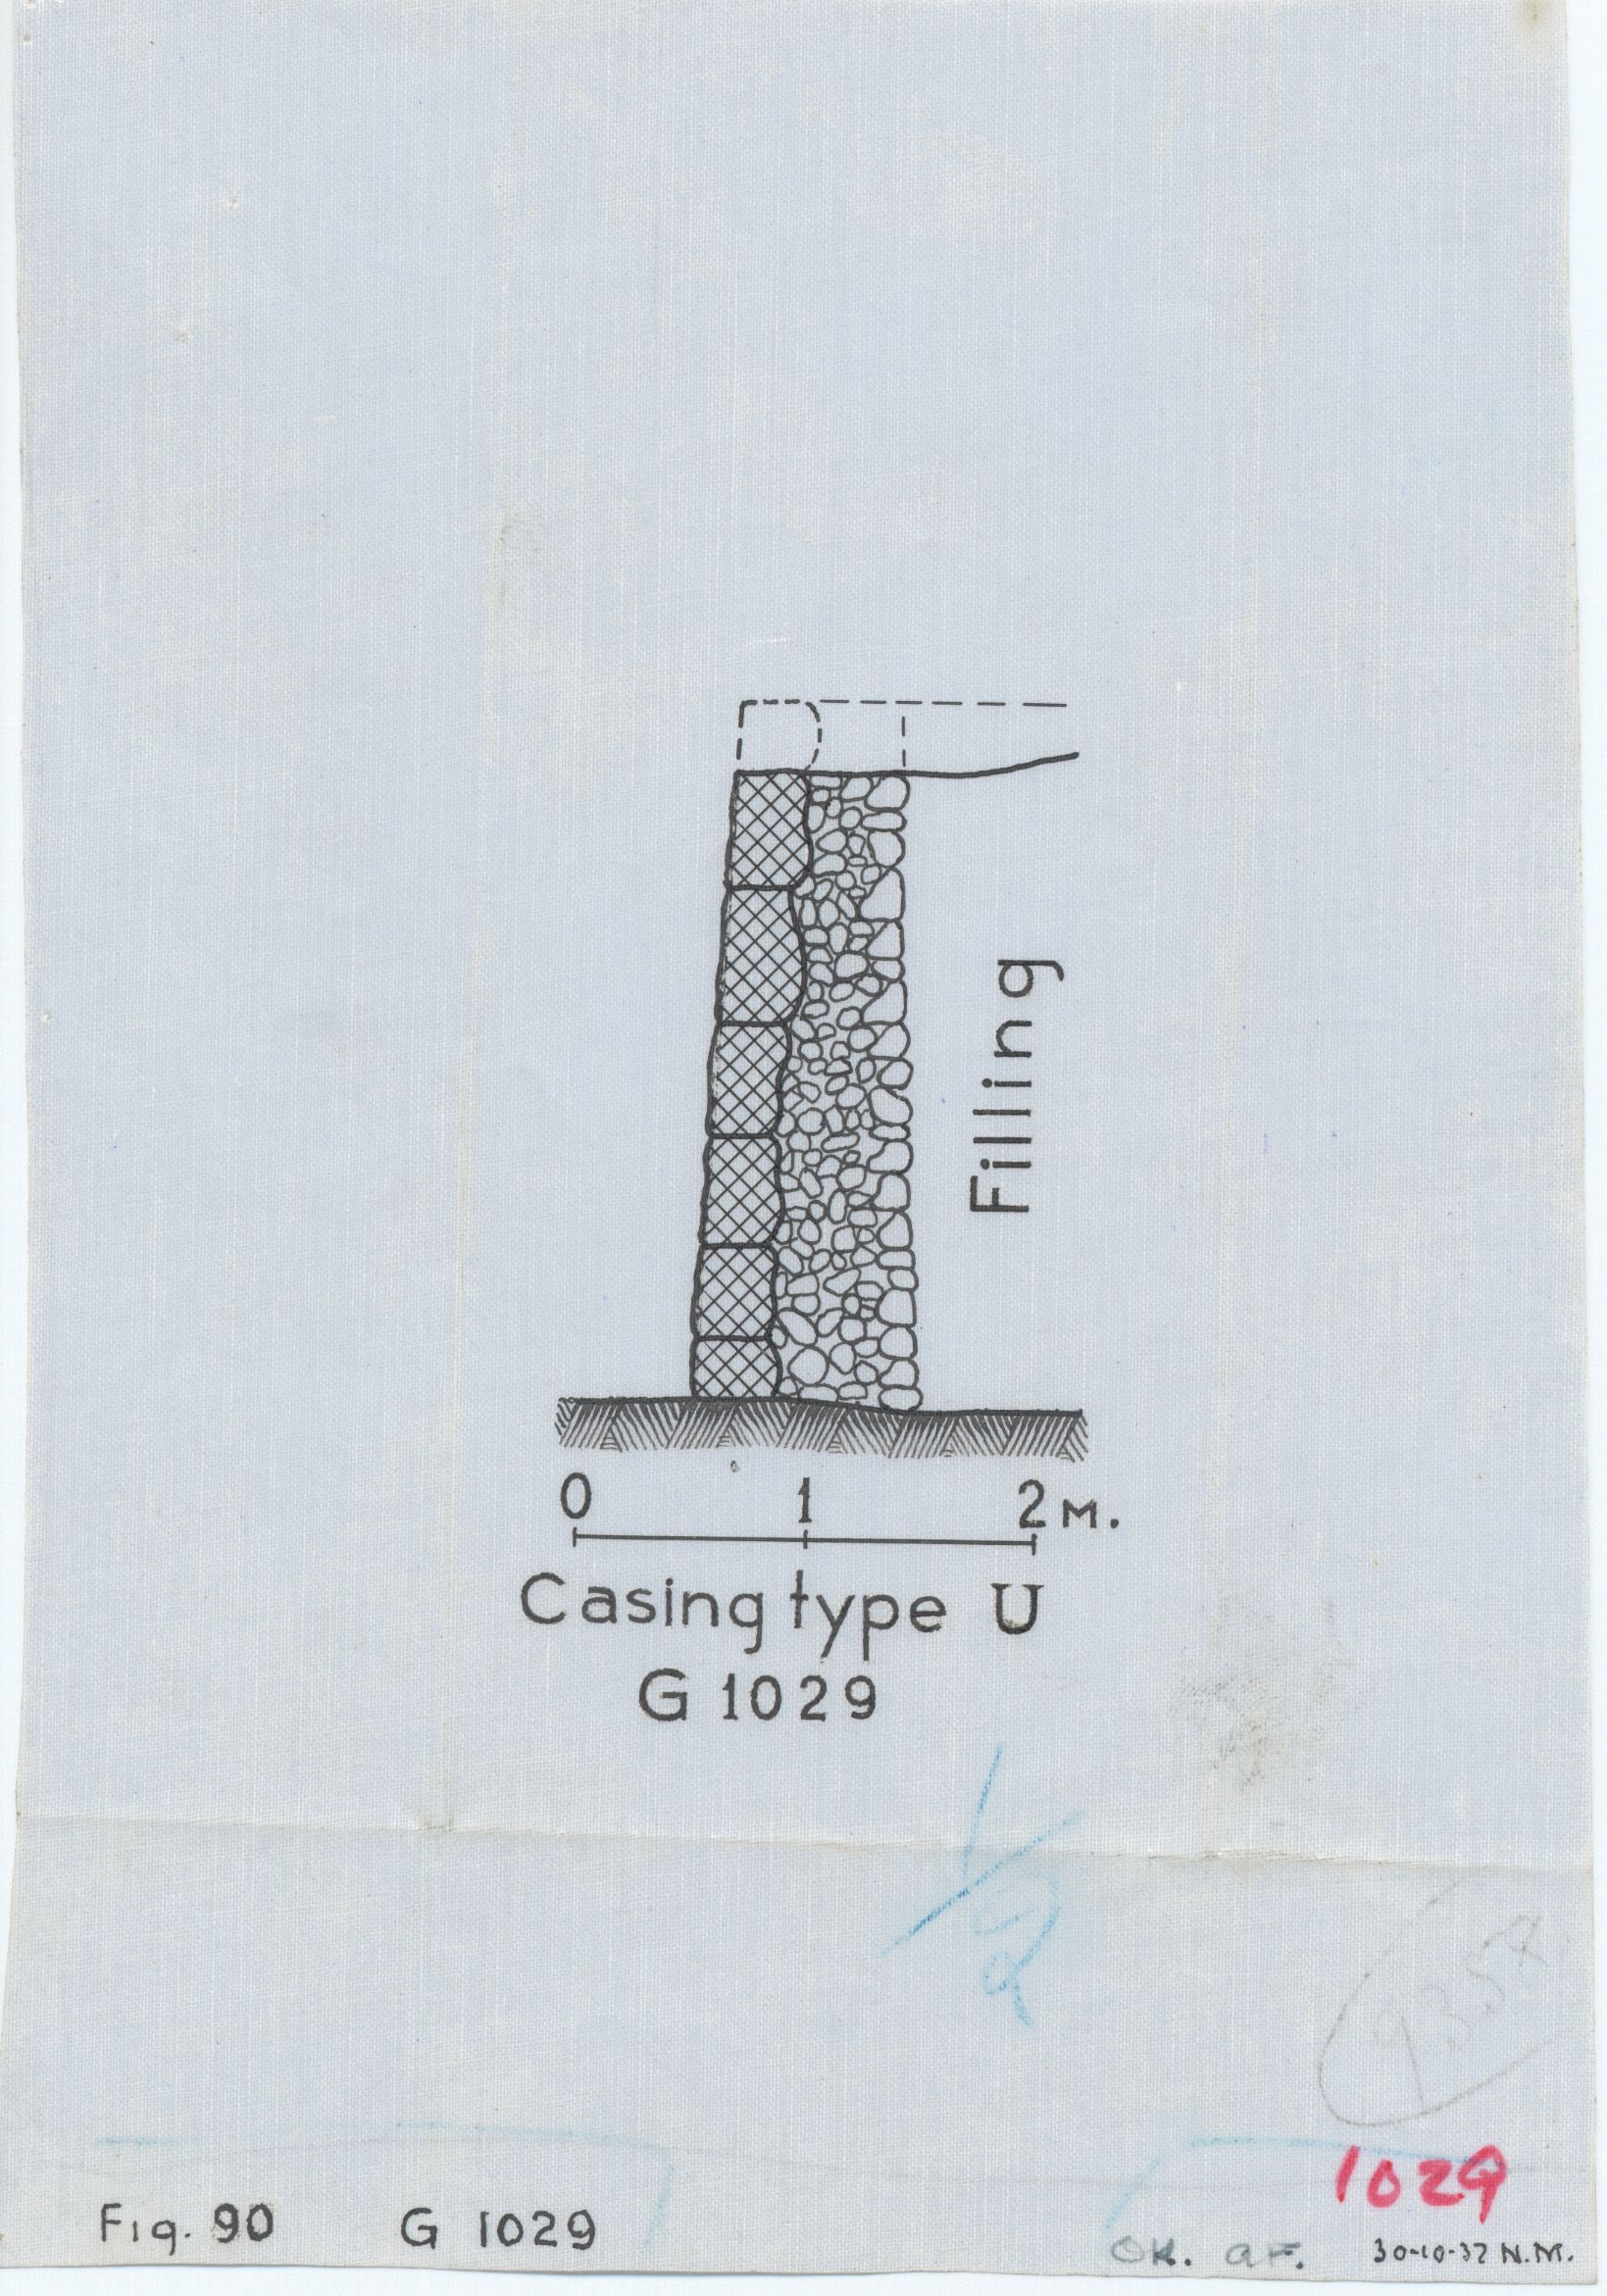 Maps and plans: G 1029, Section of casing type U